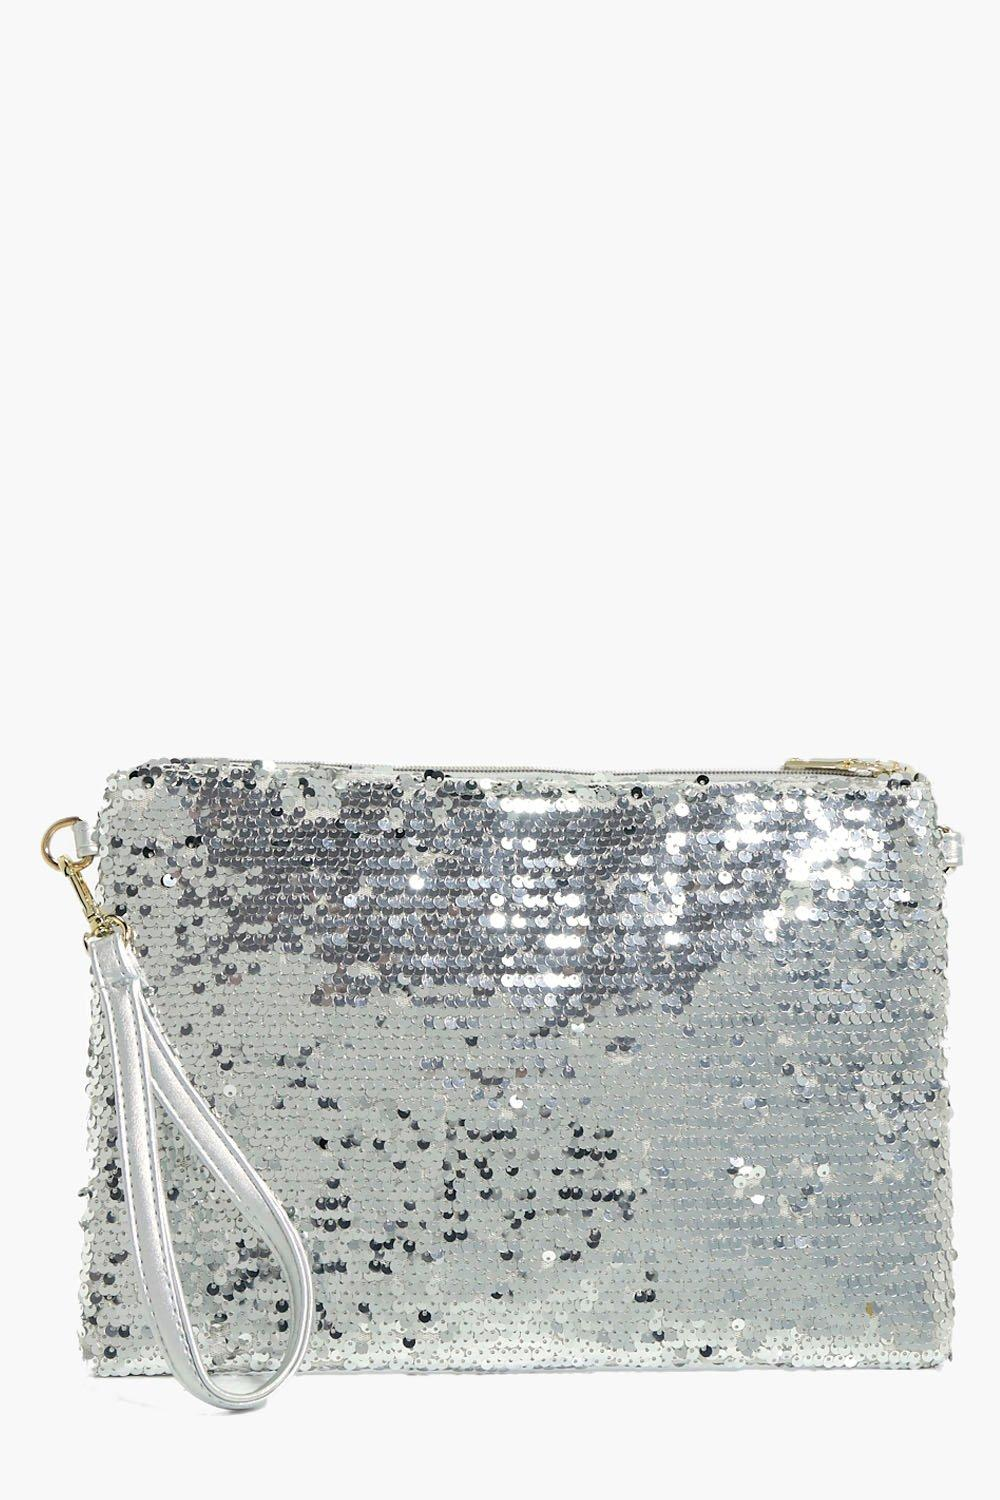 Two Way Sequin Clutch - silver - Natasha Two Way S